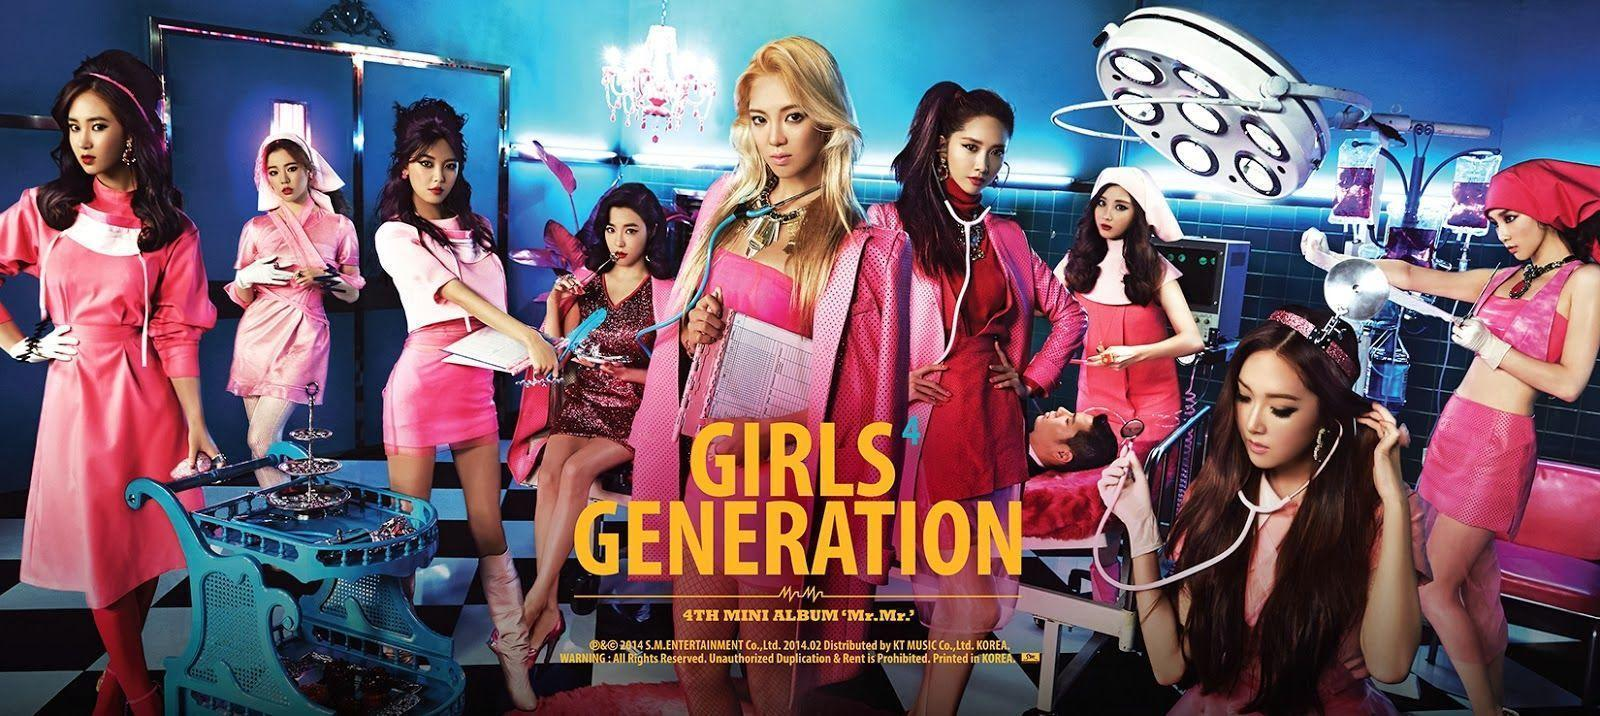 Wallpapers Snsd 2015 Wallpaper Cave